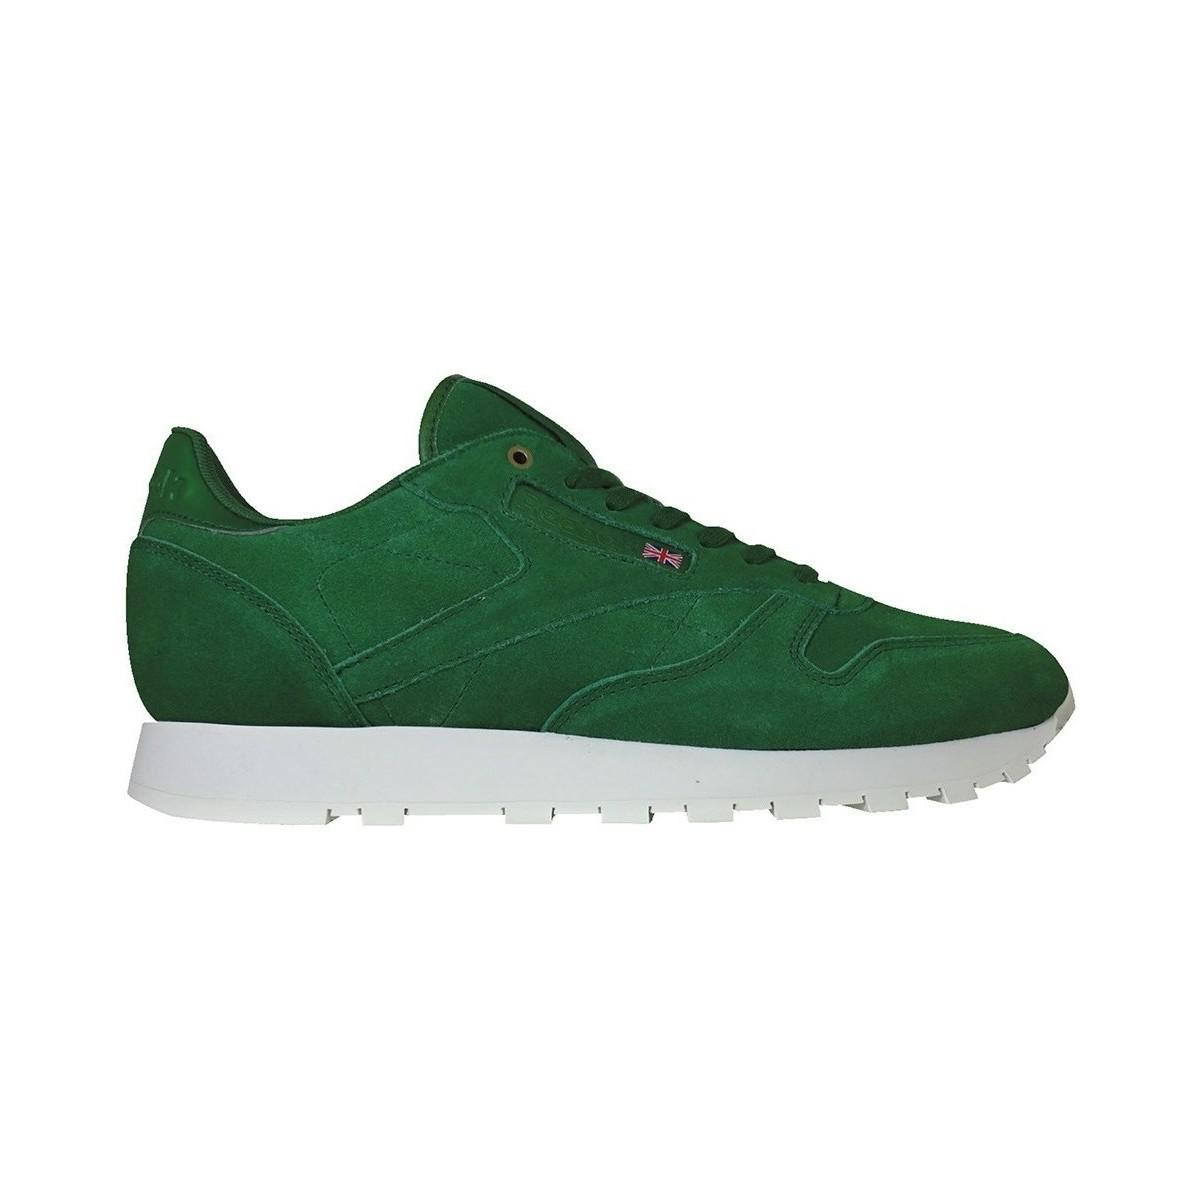 6845afd9b023 Reebok Classic Leather Montana Cans Collaboration Men s Shoes ...